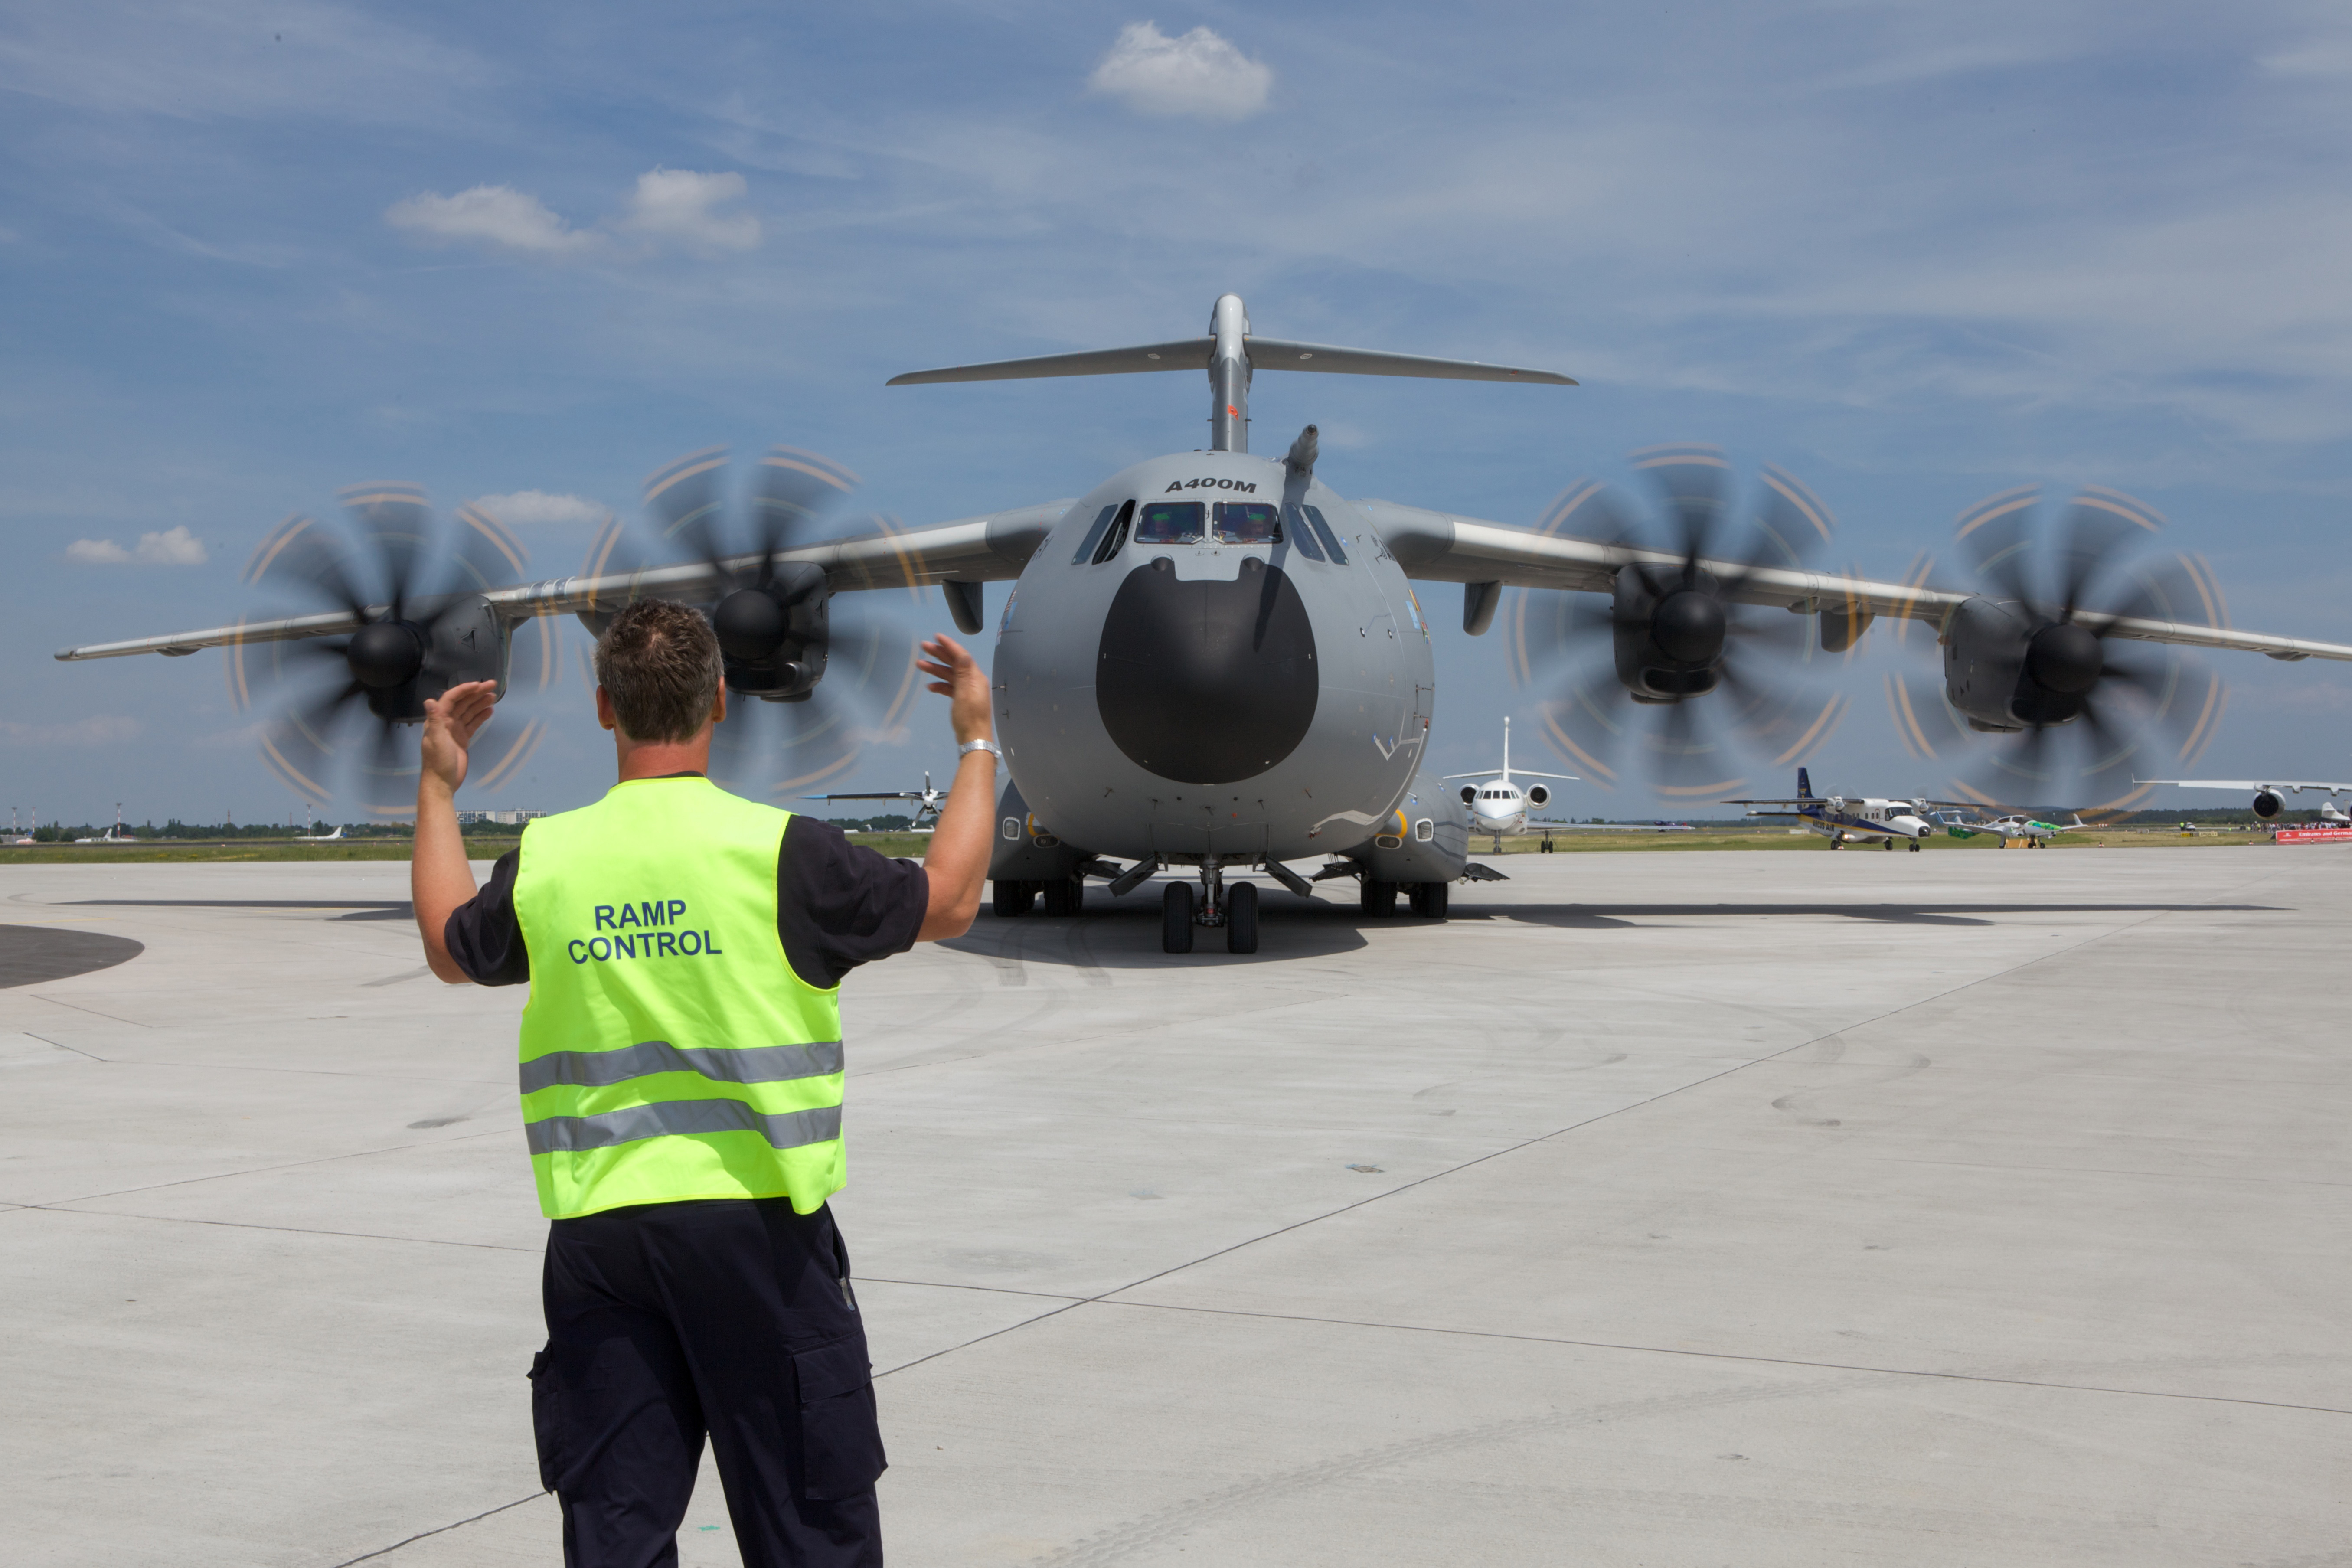 Aeroplans - A400M pendant ILA Berlin Airshow 2010 © Airbus Military